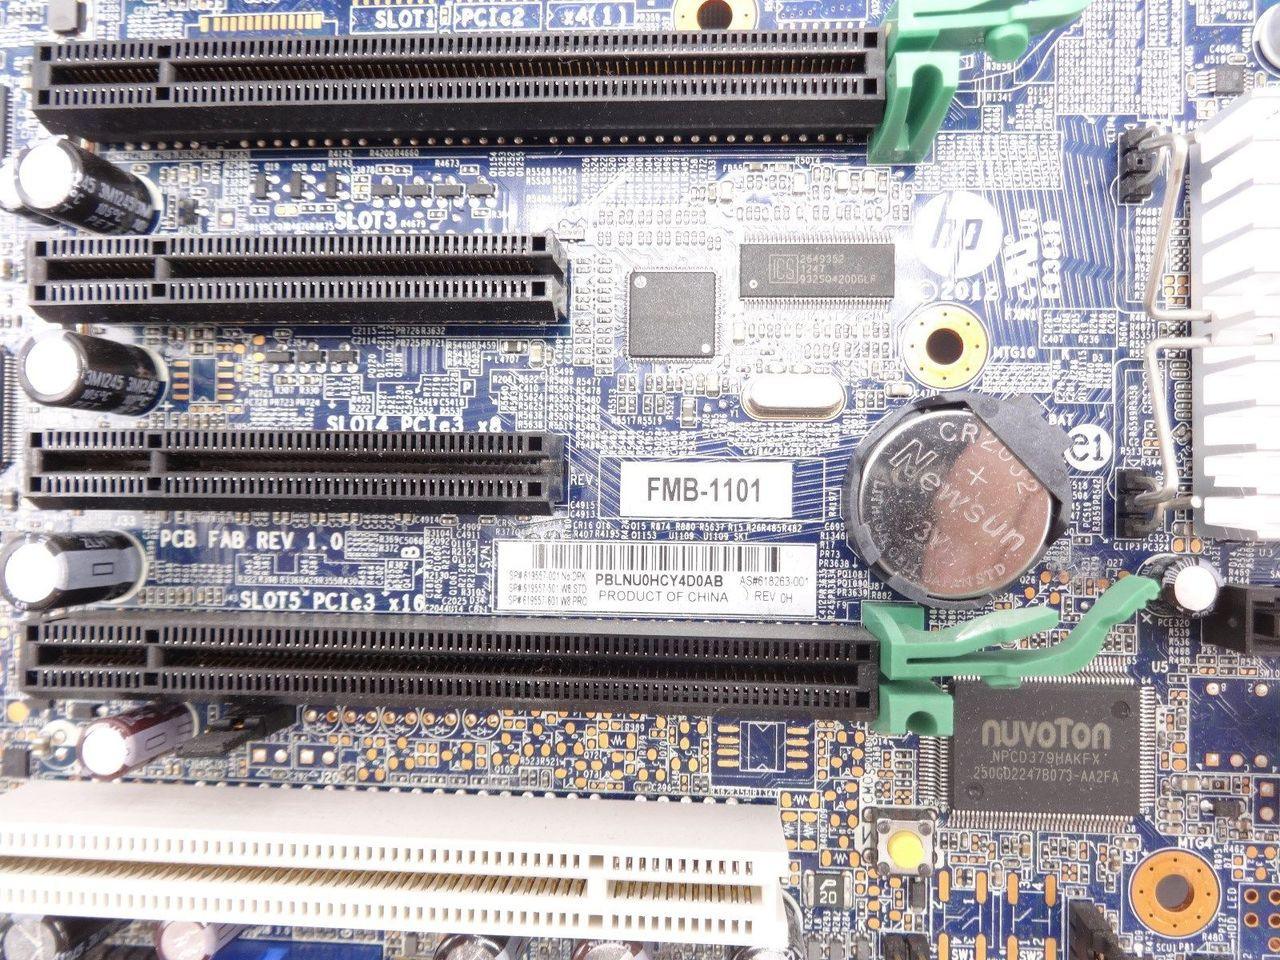 HP 619557-001 Z420 Workstation Minitower System Board